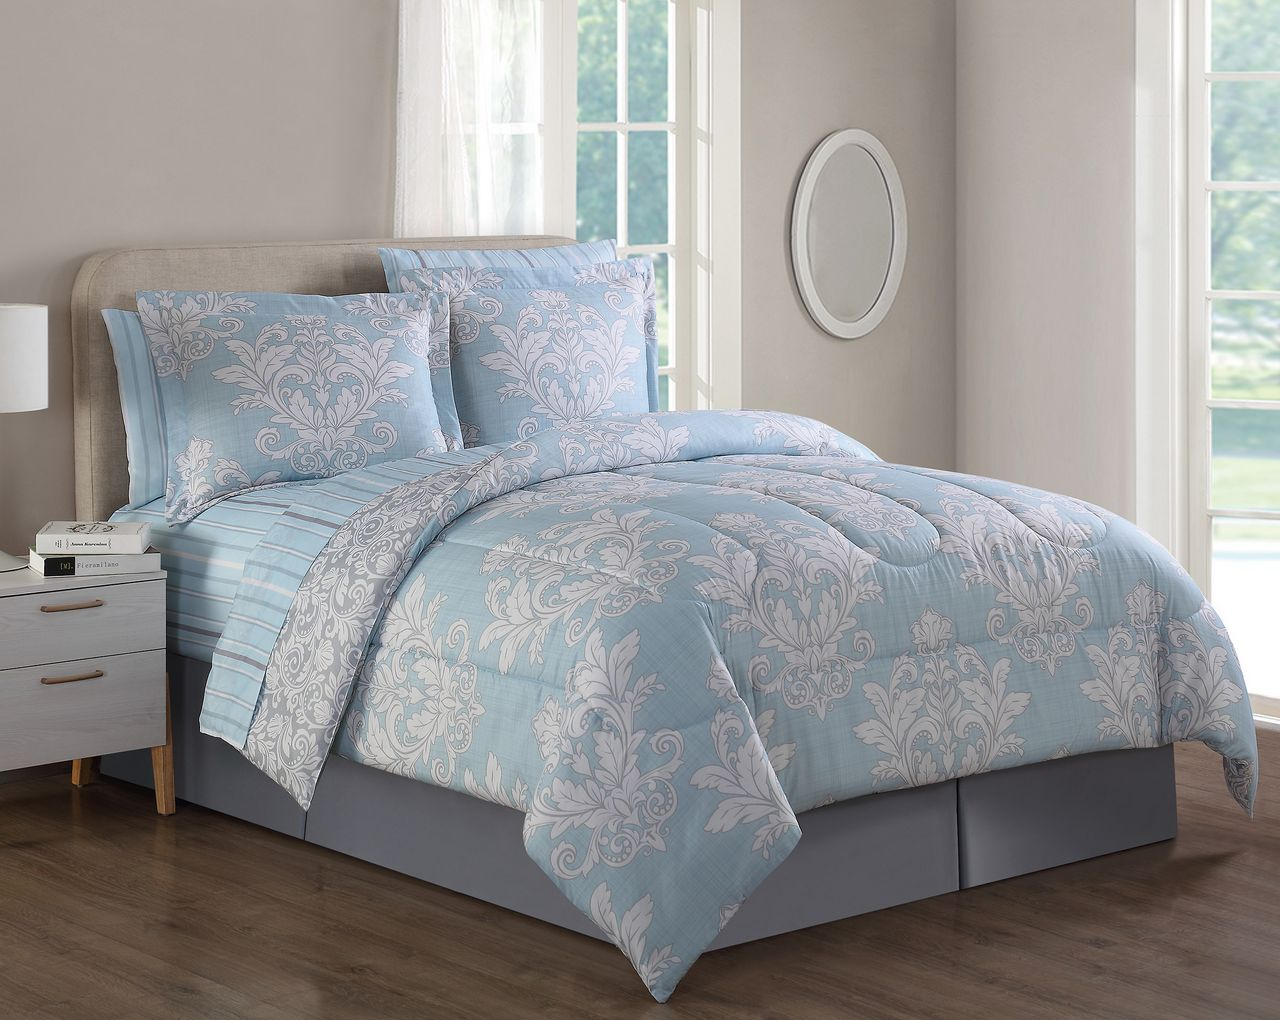 set blue elizabeth large clearance bedding luxury andrea blowoutbedding comforter image com